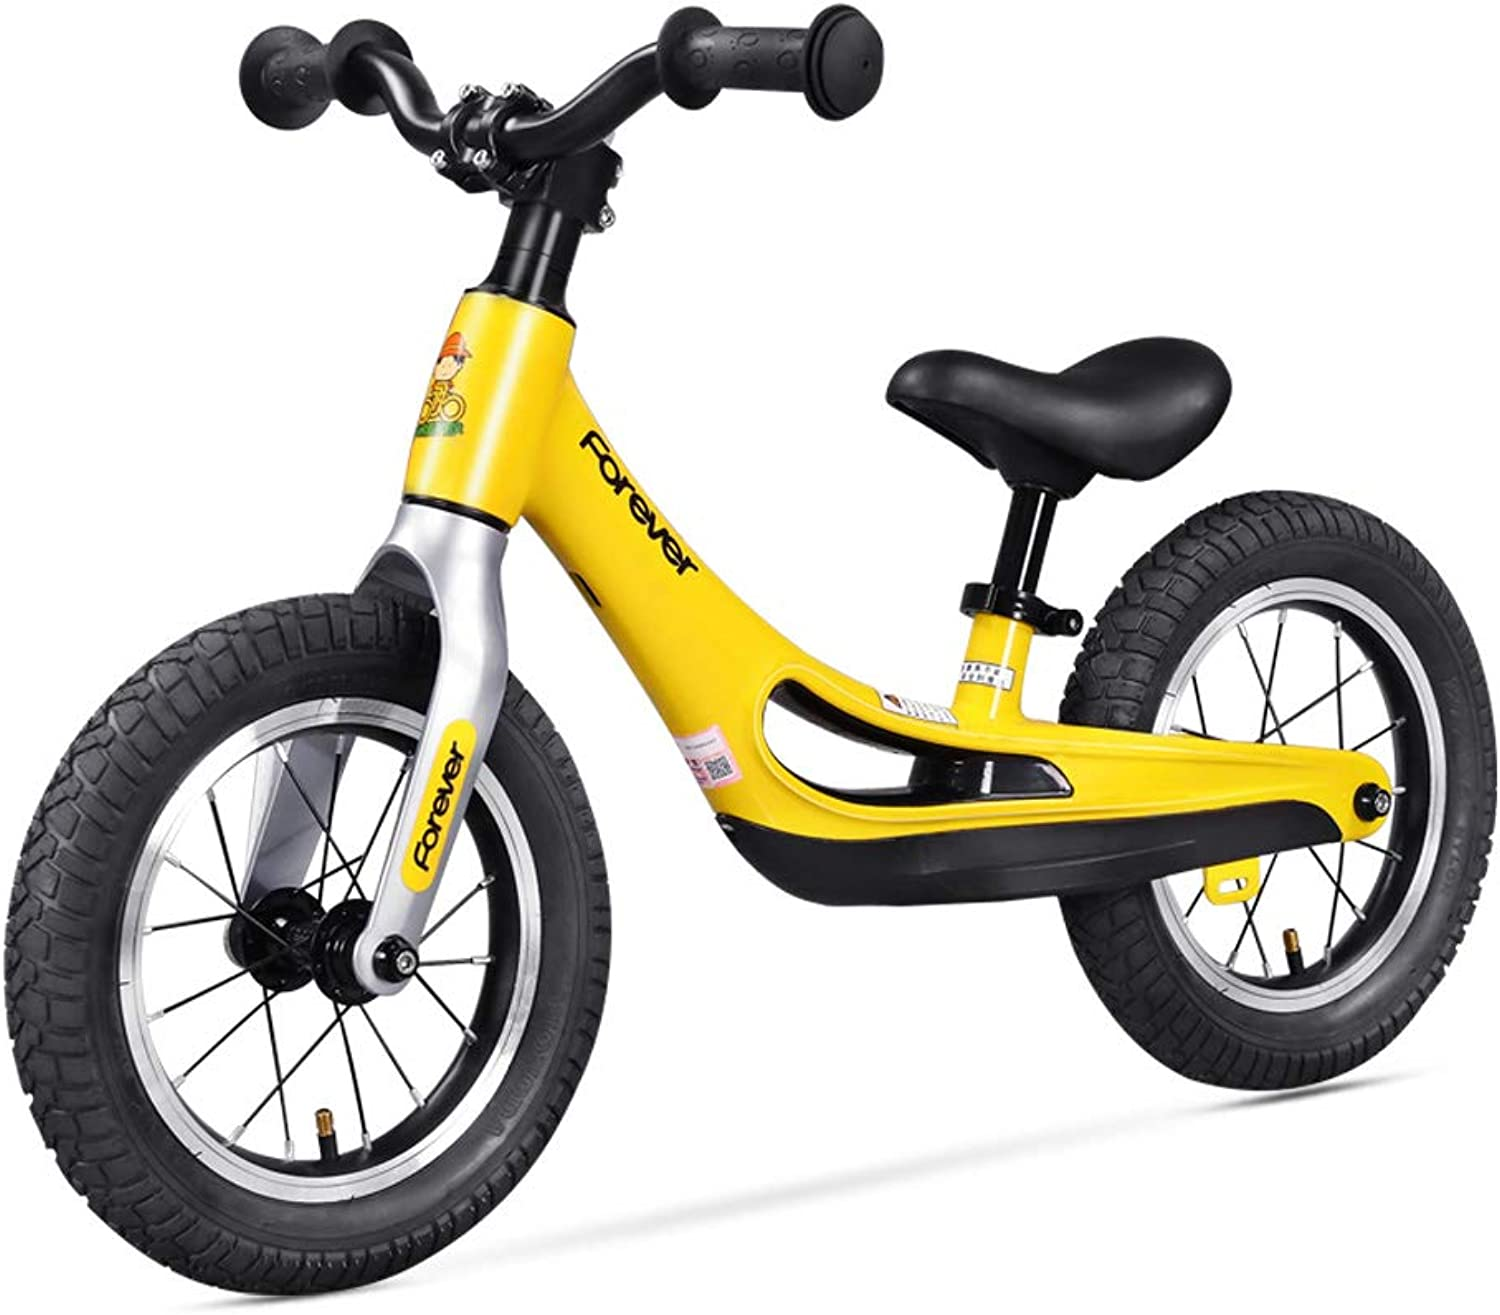 FLYING PIGEON FG 1936 Kid's Balance Bike, Toddler Bike, UltraLight Magnesium Alloy No Pedal Walking Bicycle, Ages 2 to 5 Years Old for Boys and Girls, Balance Bikes for Toddlers